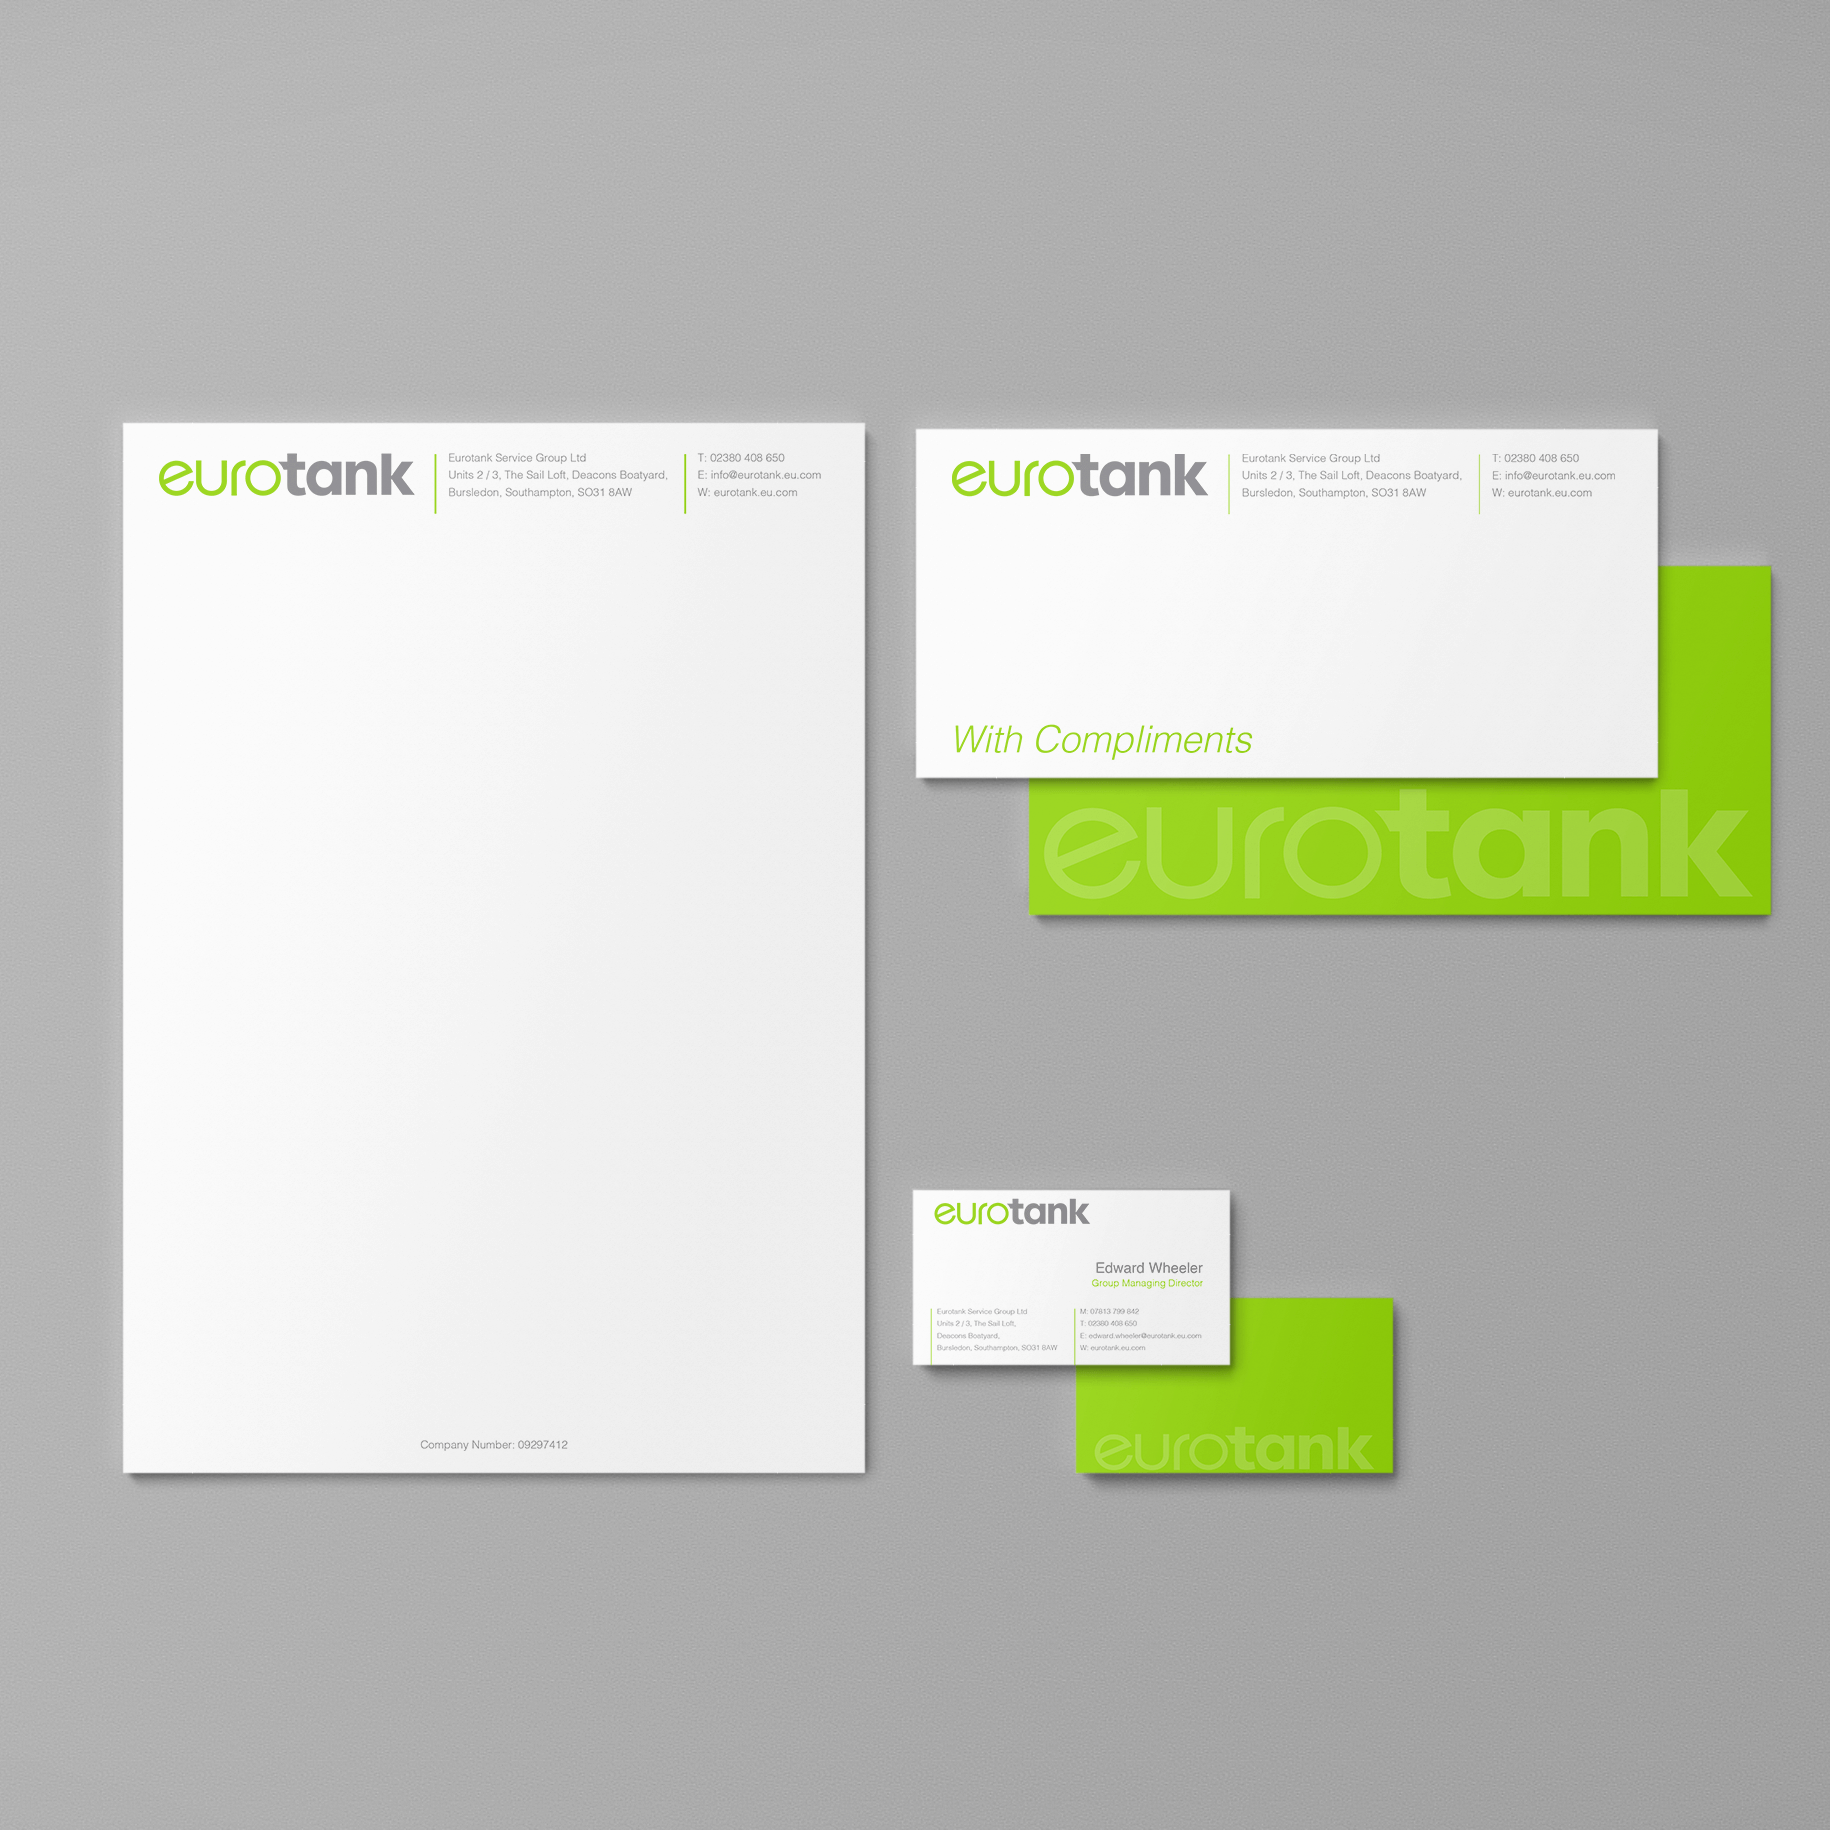 Eurotank corporate ID design